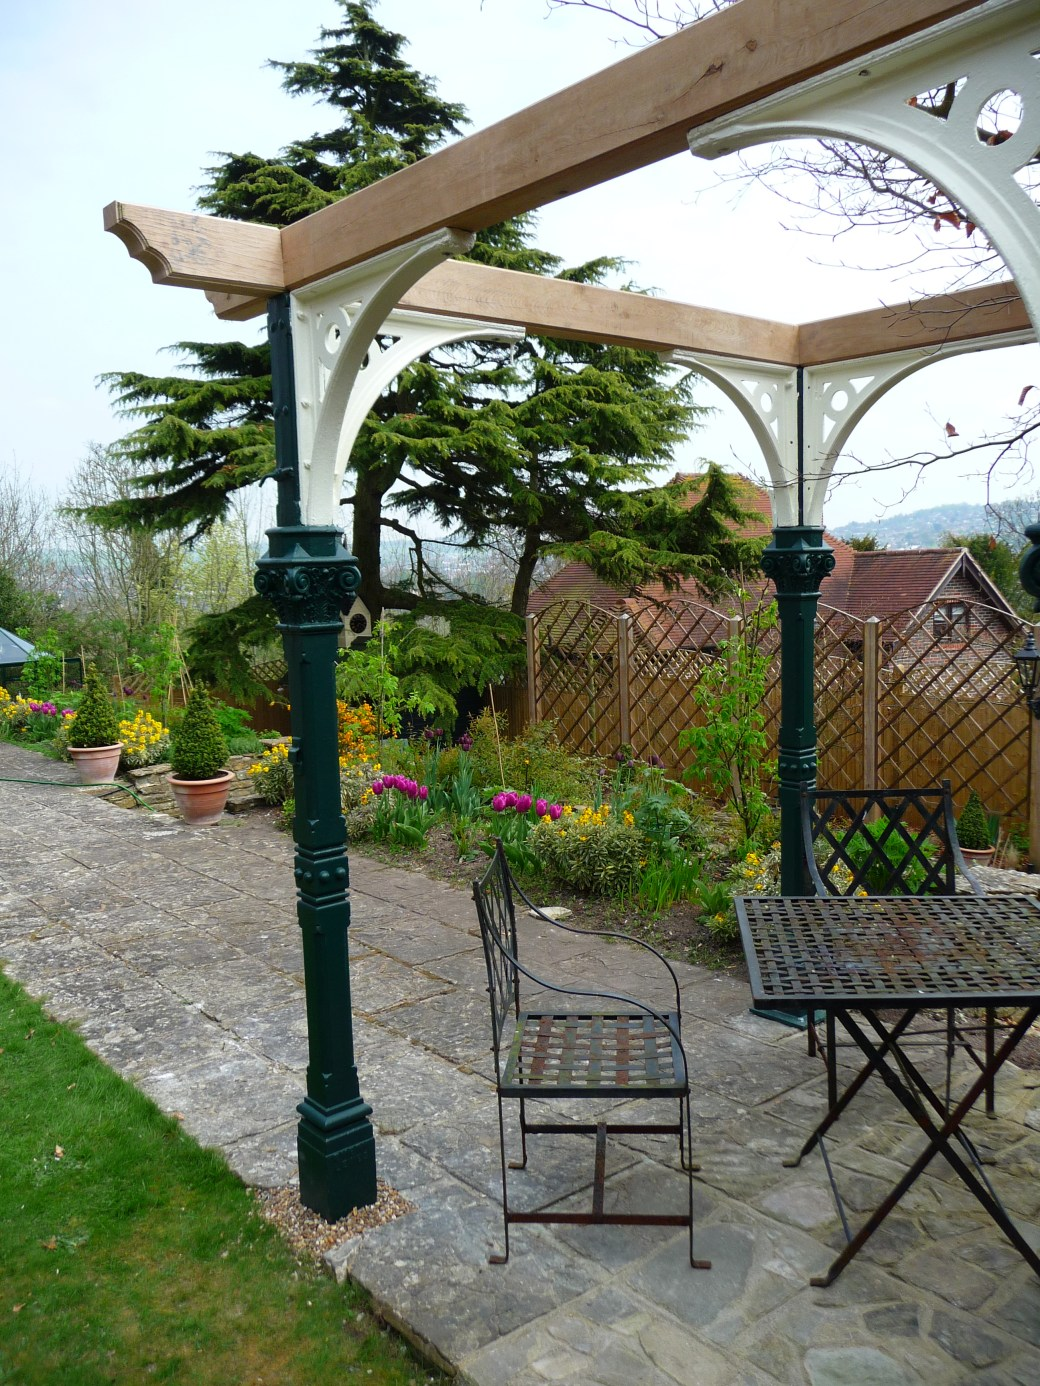 Reclaimed pillars from the West Pier in Brighton restored and installed into a garden in Withdean